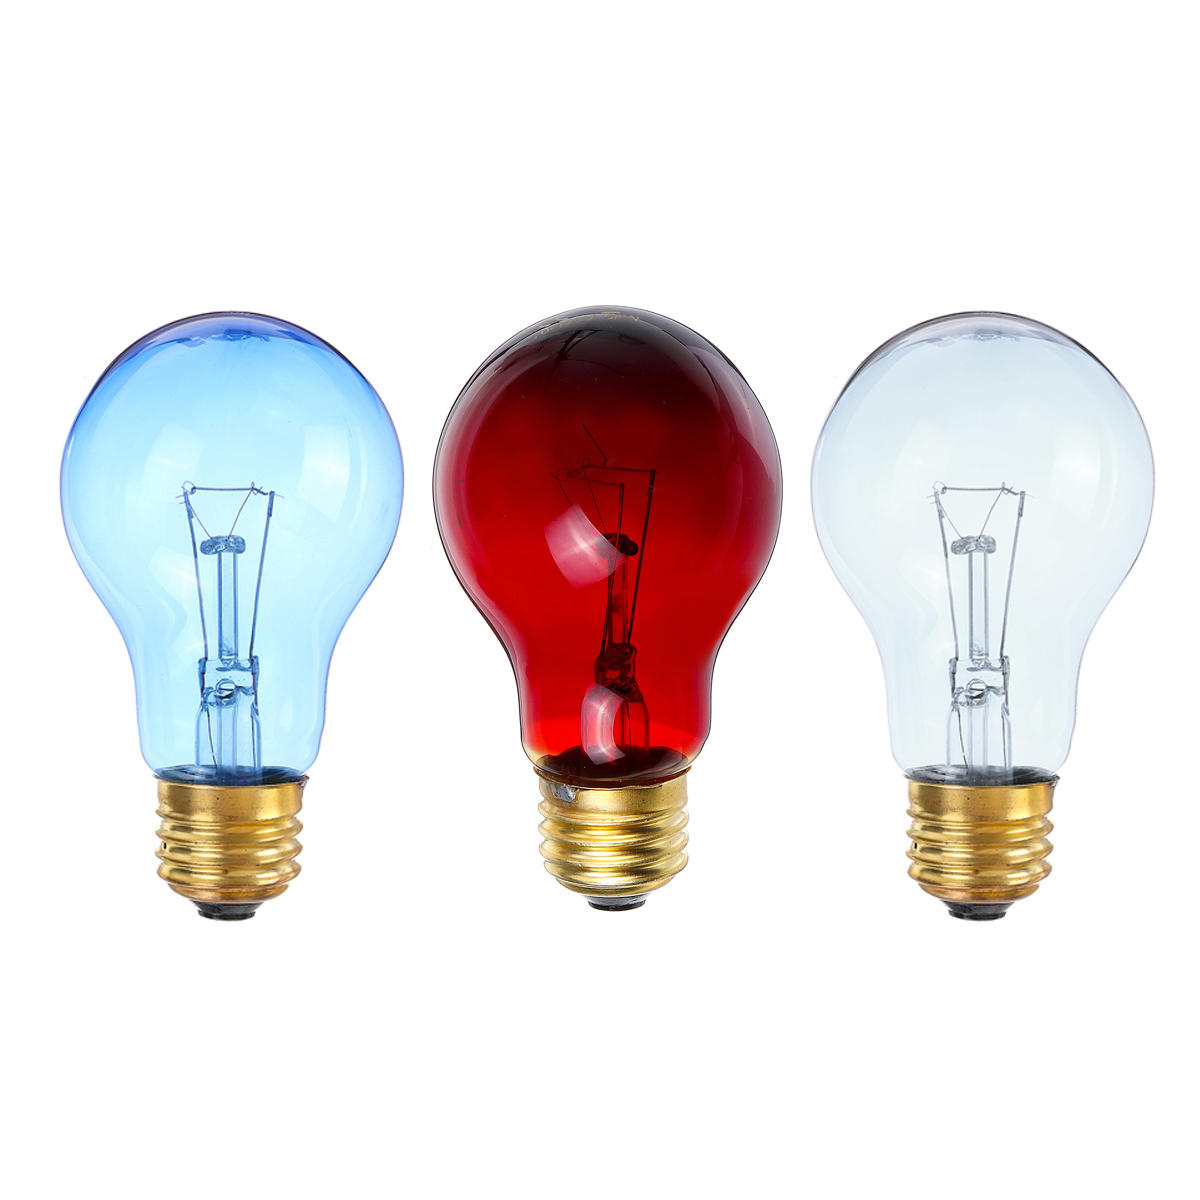 Ac110v 50w Grey Red Blue Heat Lamp Heating Infrared Pet Light Bulb For Reptile Tortoise Sale